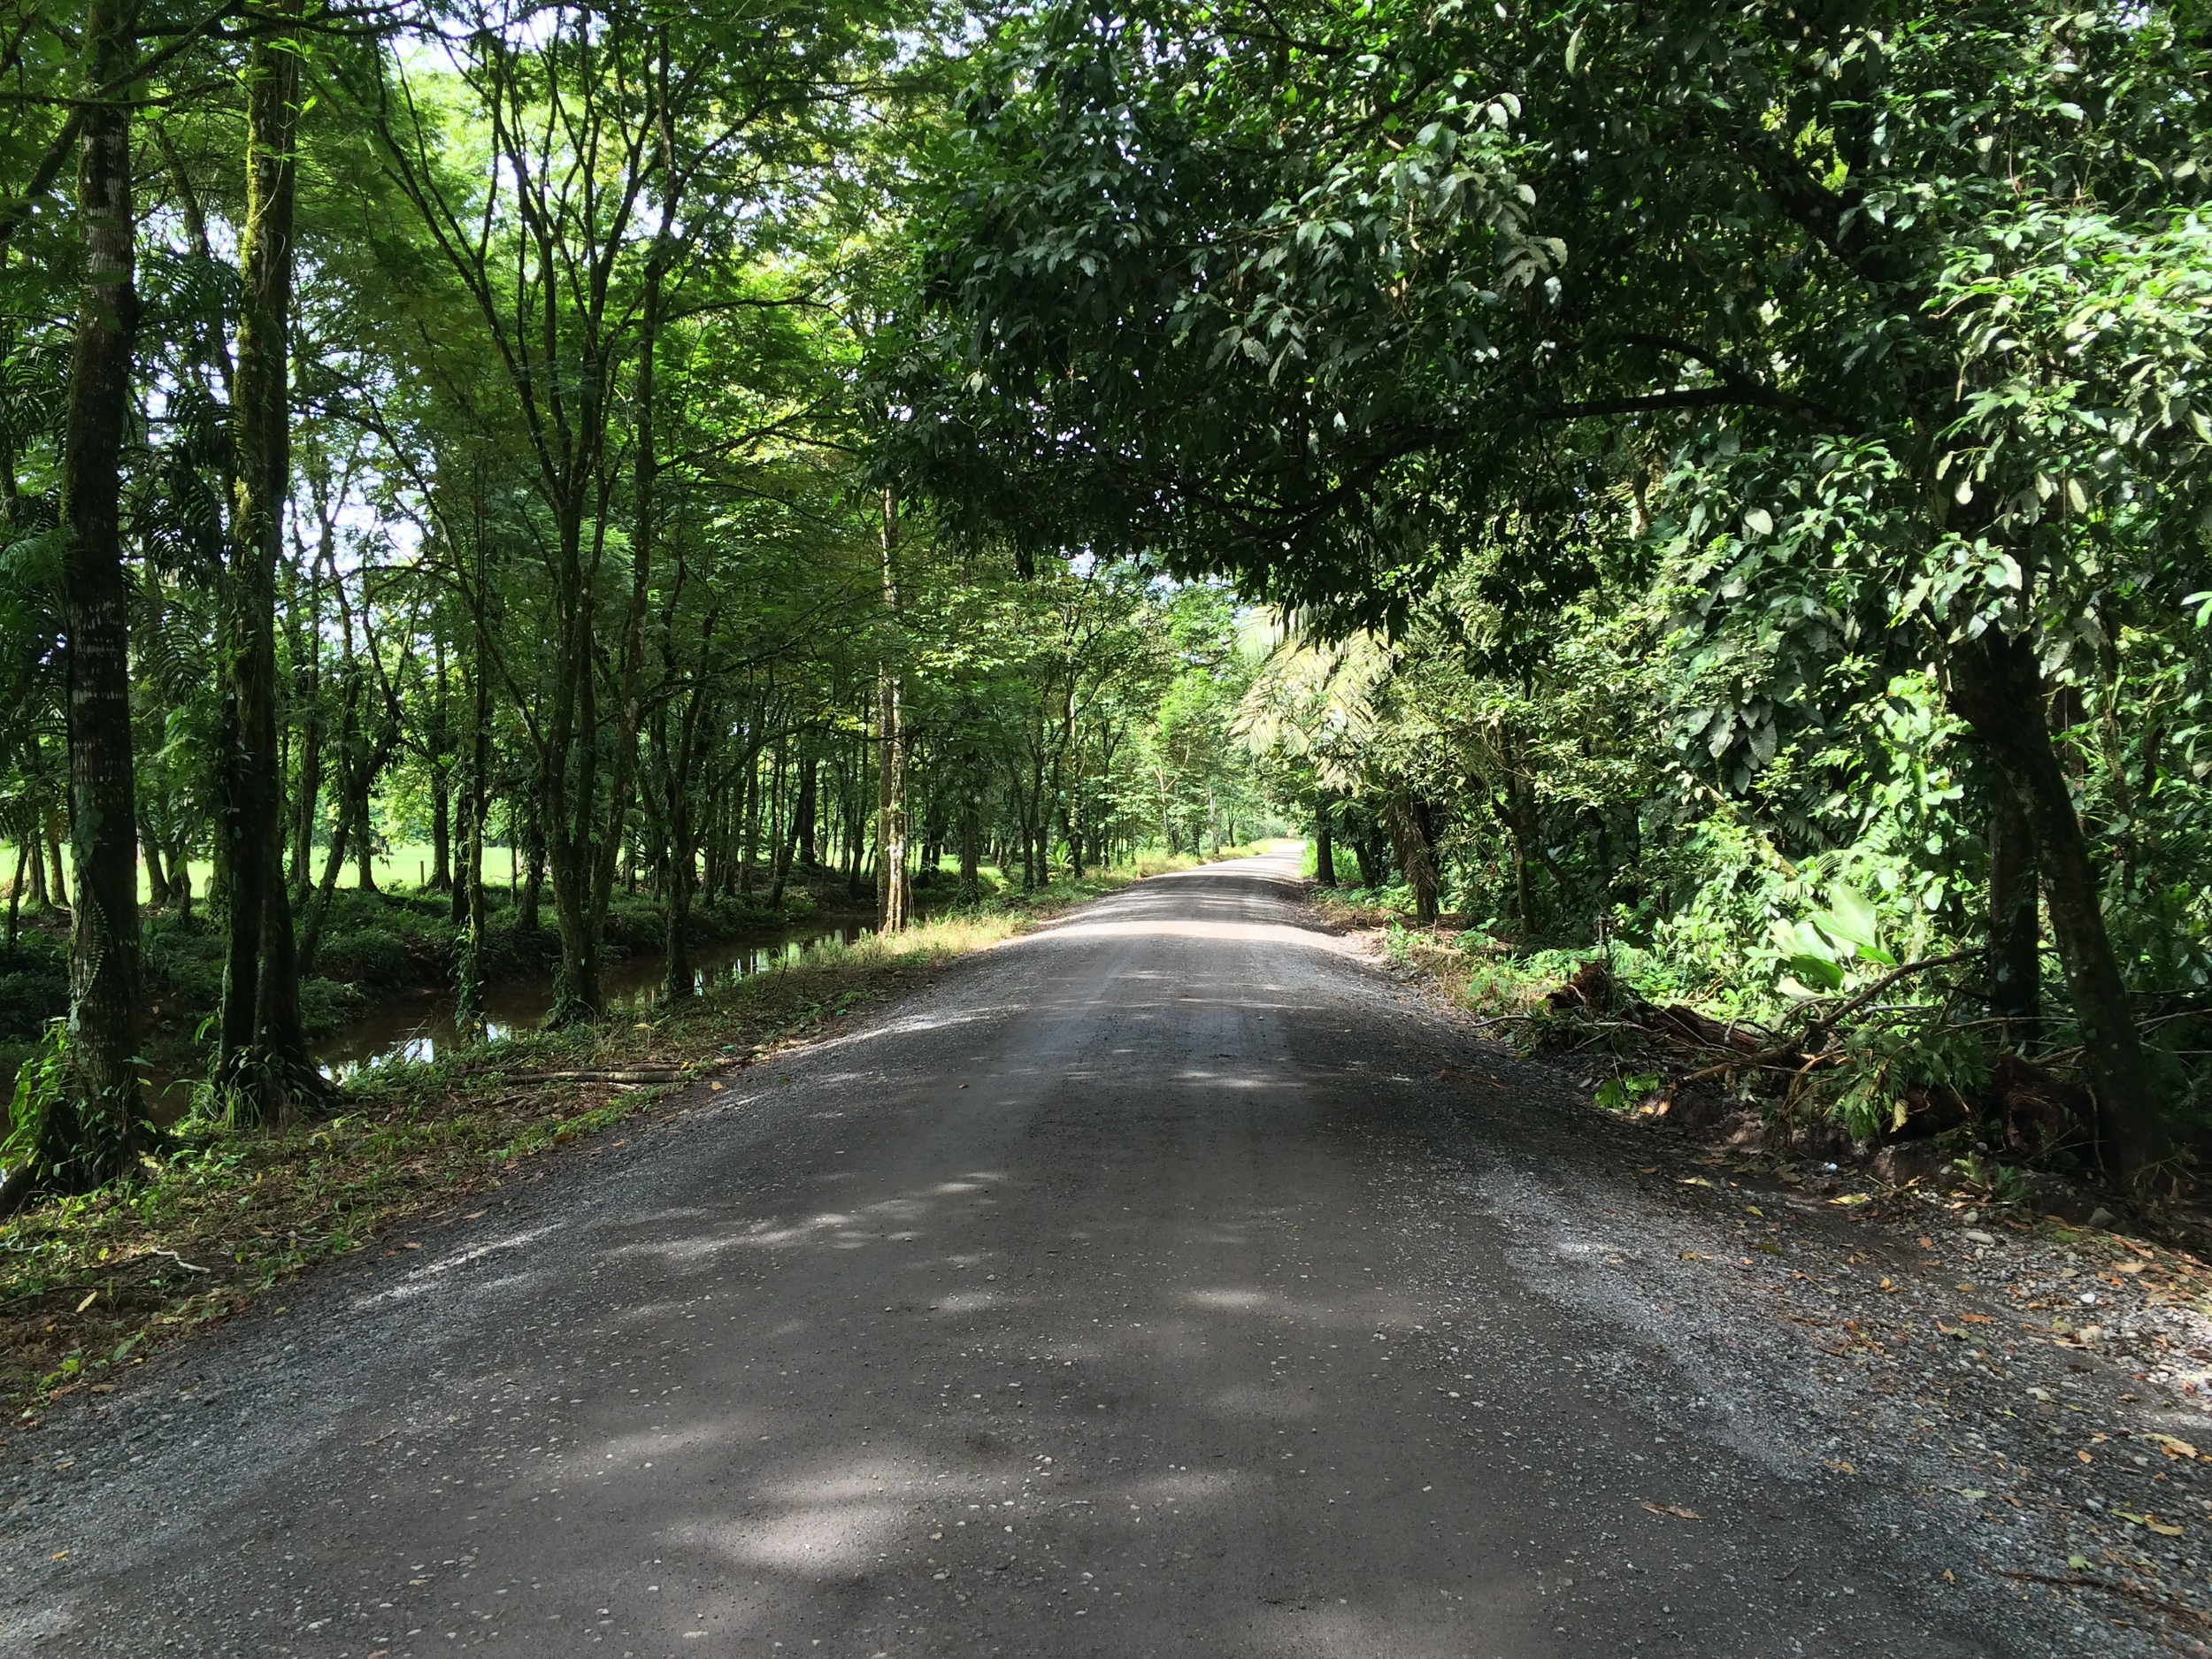 The trip to Tortuguero is long, and requires a drive from San Jose to La Pavona. Shortly before La Pavona, the road becomes slightly unpaved and rutted. From La Pavona, visitors must take a boat to Tortuguero.